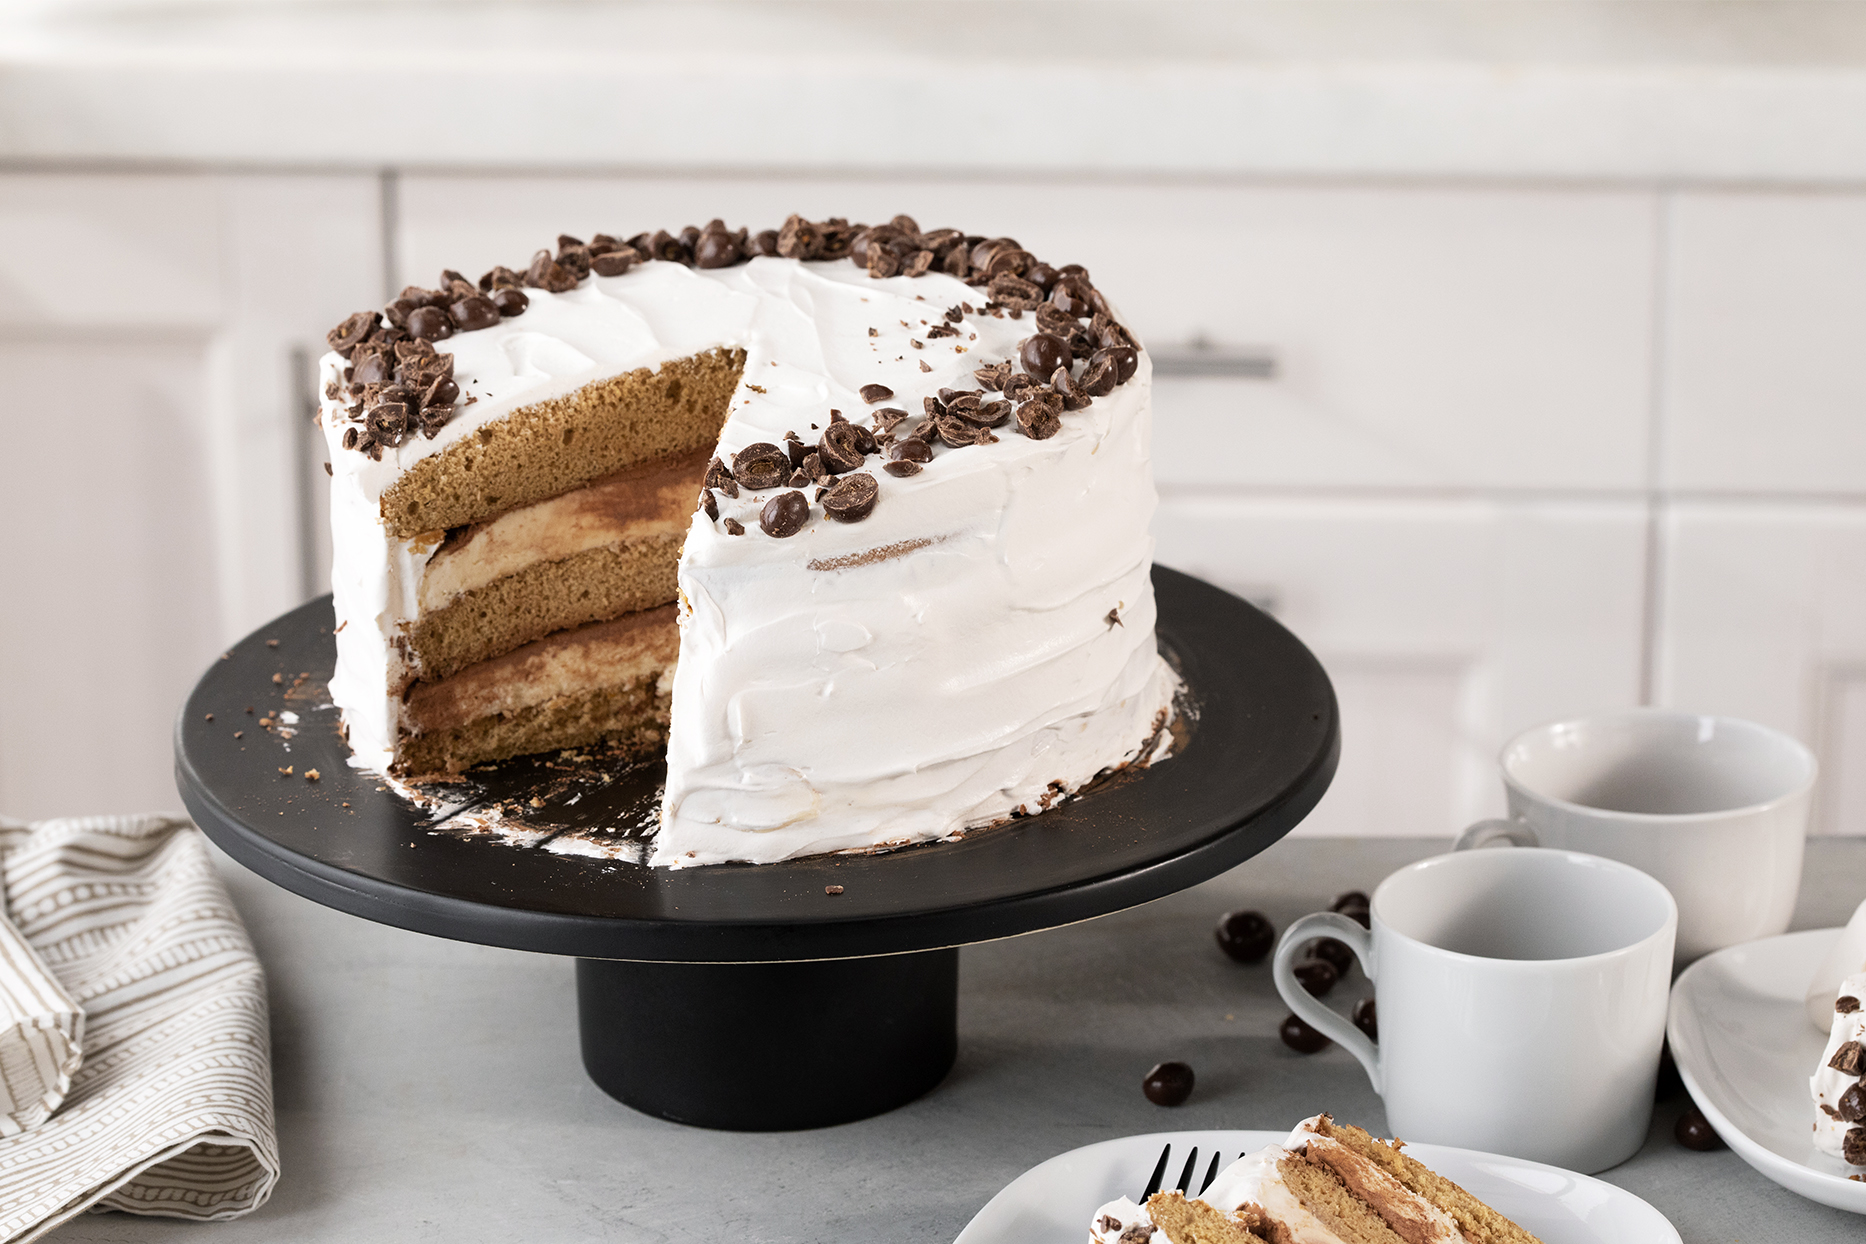 Tiramisu Ice Cream Cake with Mascarpone Ice Cream